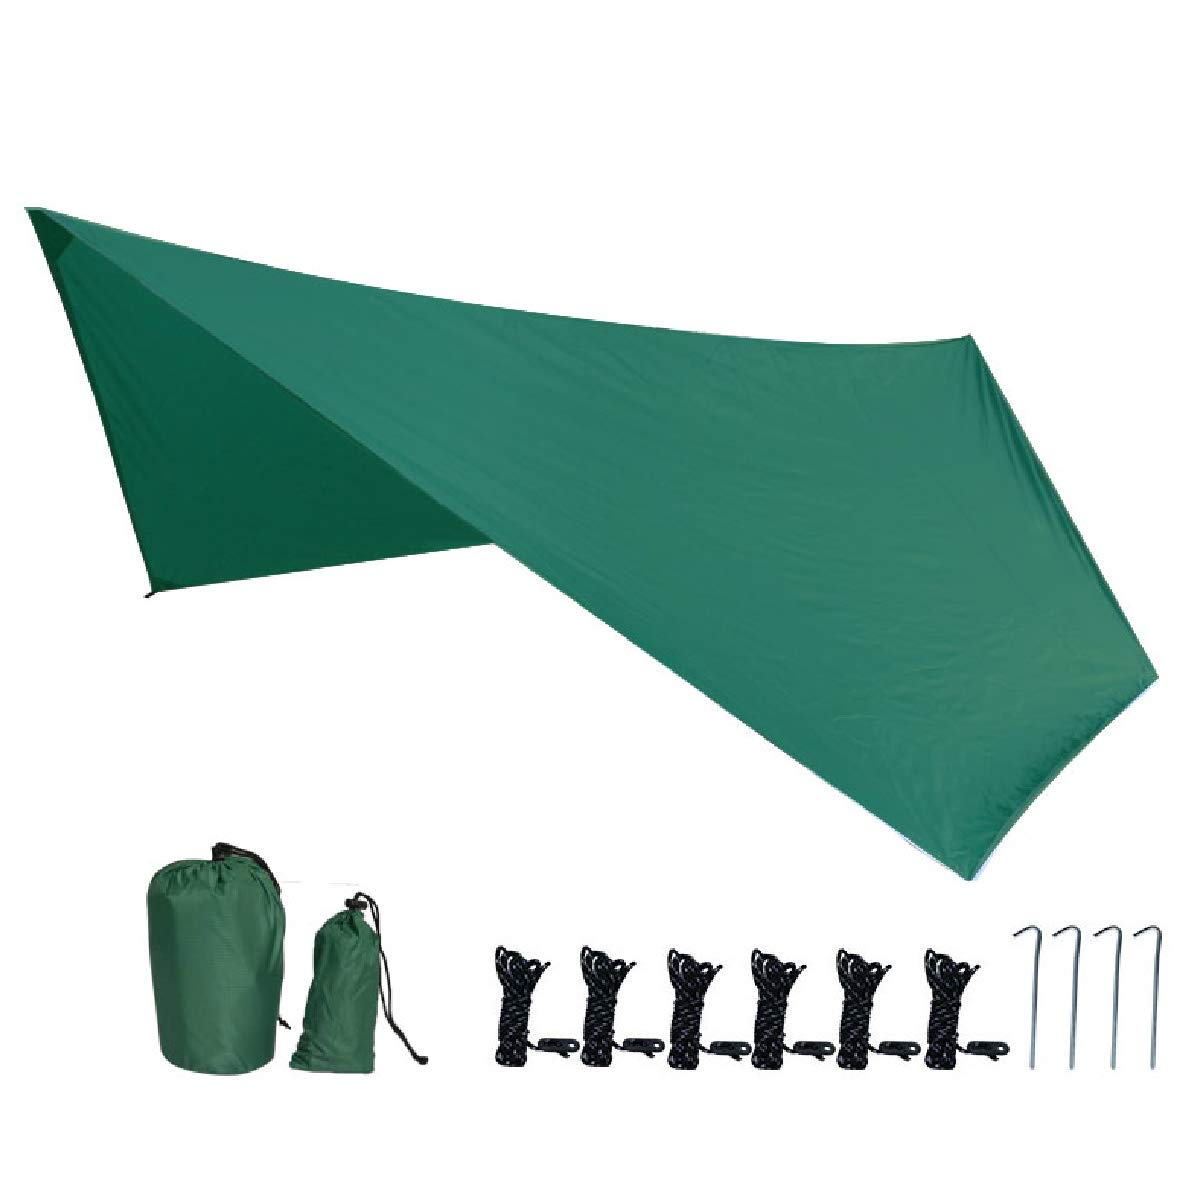 TRIWONDER Waterproof Hexagonal Hammock Rain Fly Tent Tarp Footprint Ground Cloth Camping Shelter Sunshade Beach Picnic Mat for Hiking Picnic (Dark Green+Accessories (Upgrade) - XXL) by TRIWONDER